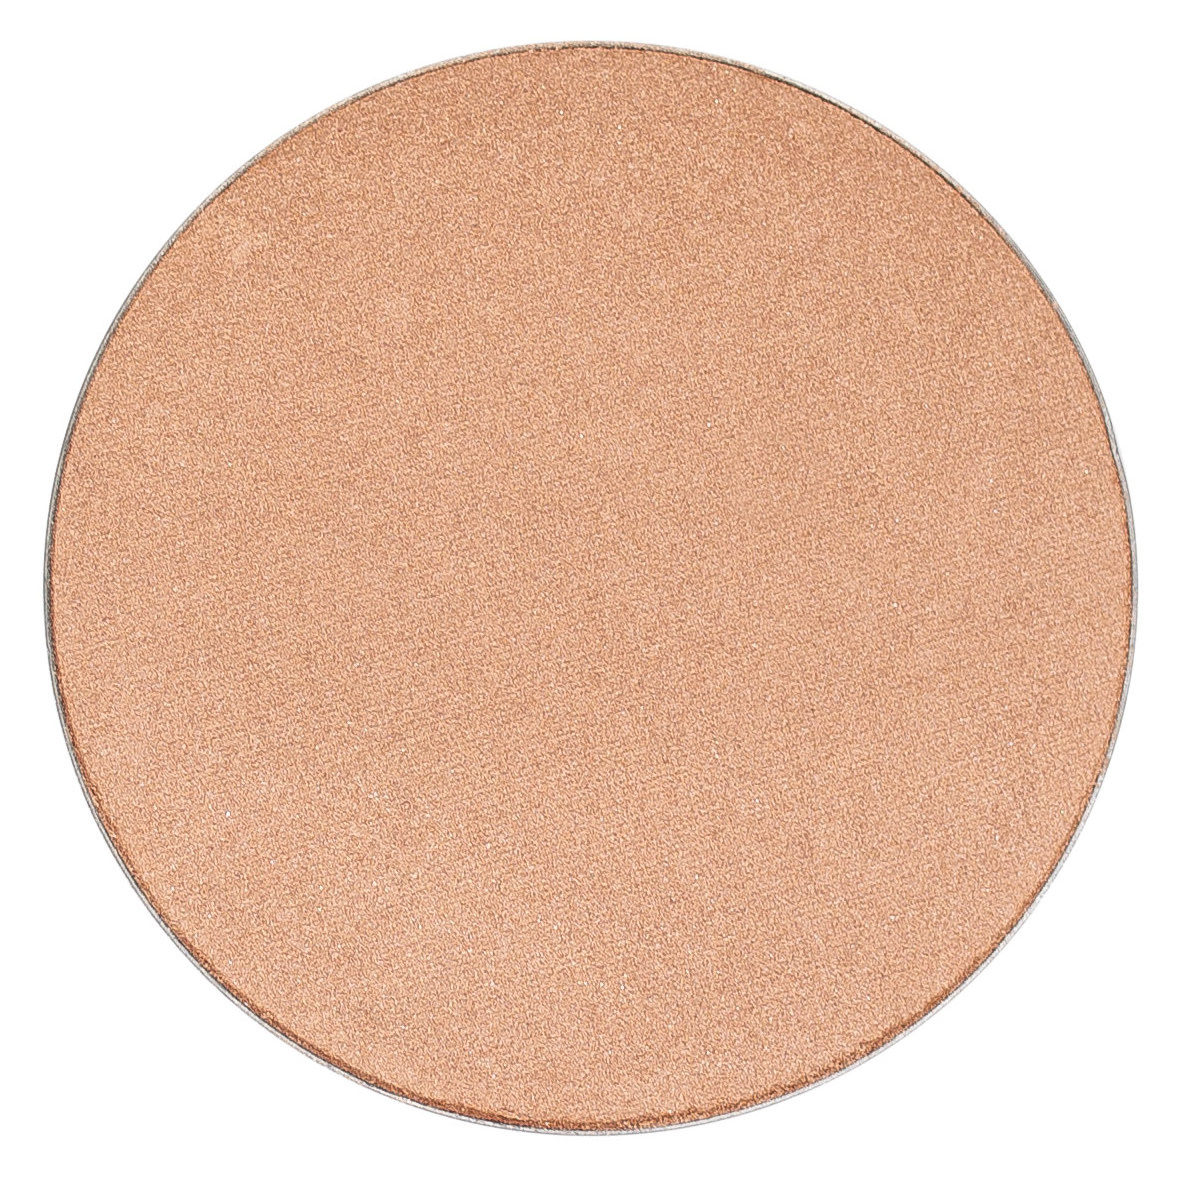 Afterglow Pressed Highlight-1